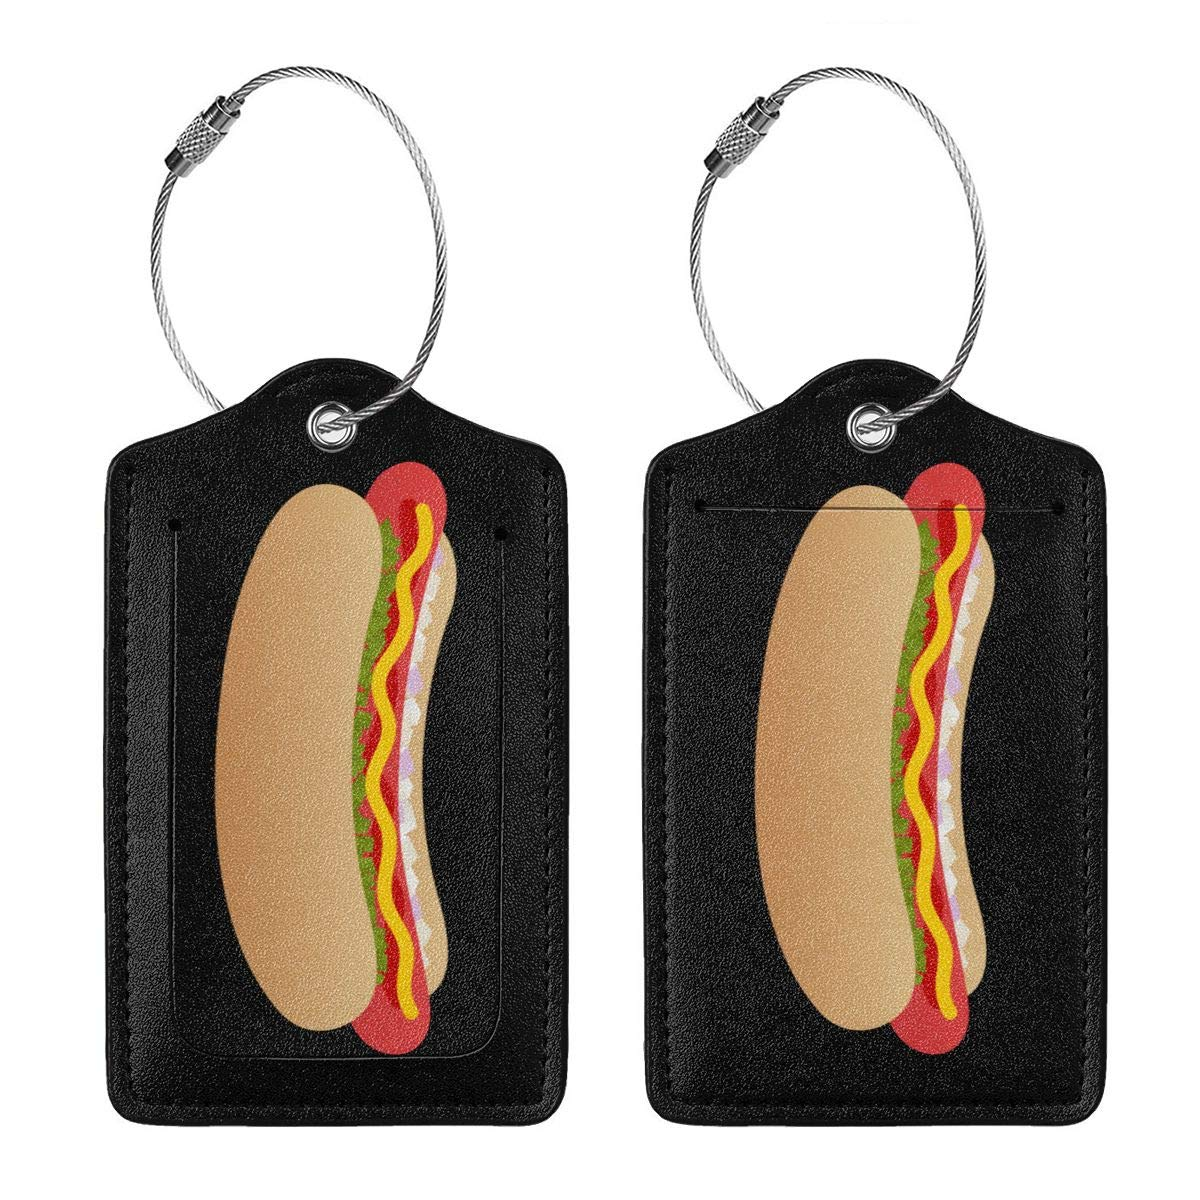 Hot Dog Travel Luggage Tags With Full Privacy Cover Leather Case And Stainless Steel Loop